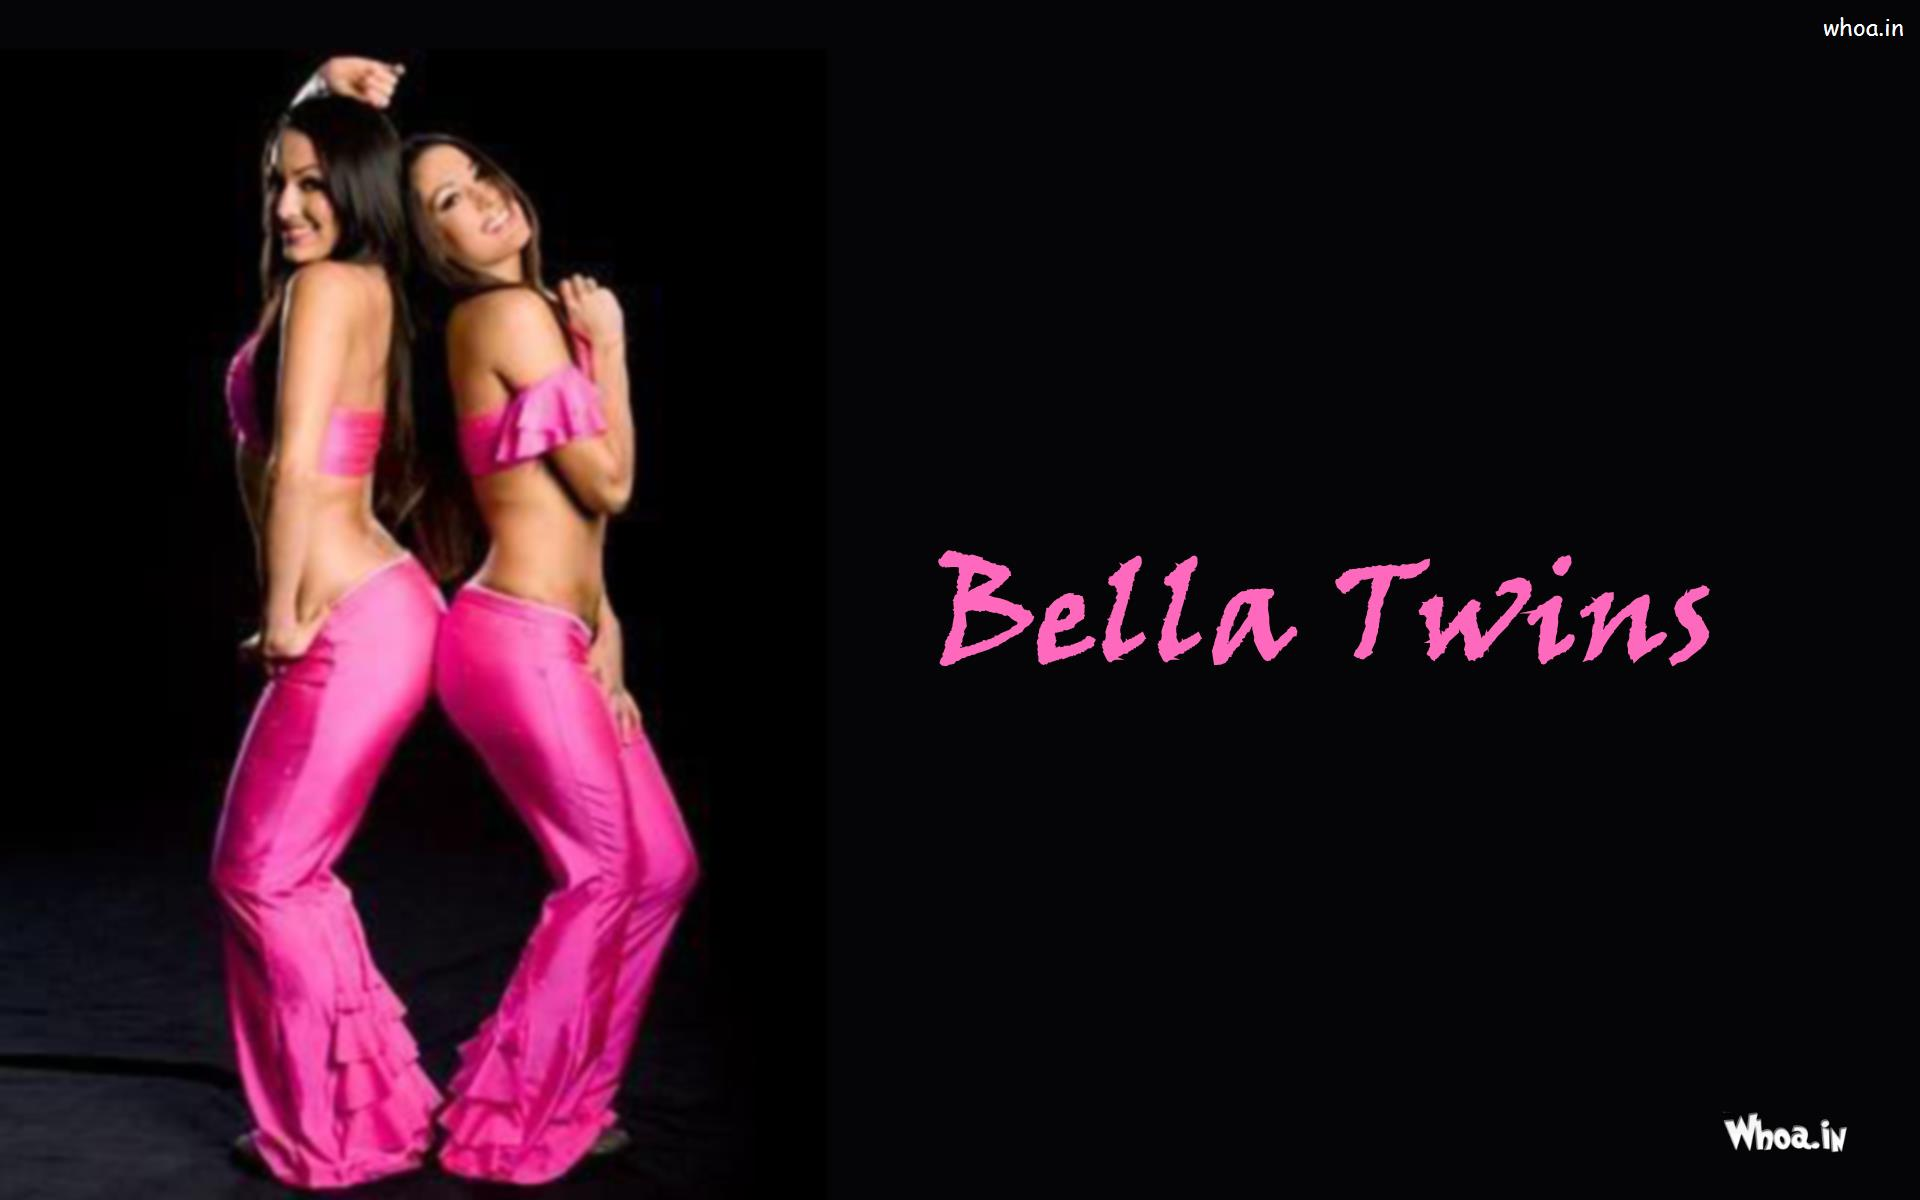 The Bella Twins In Pink Outfits Wallpaper